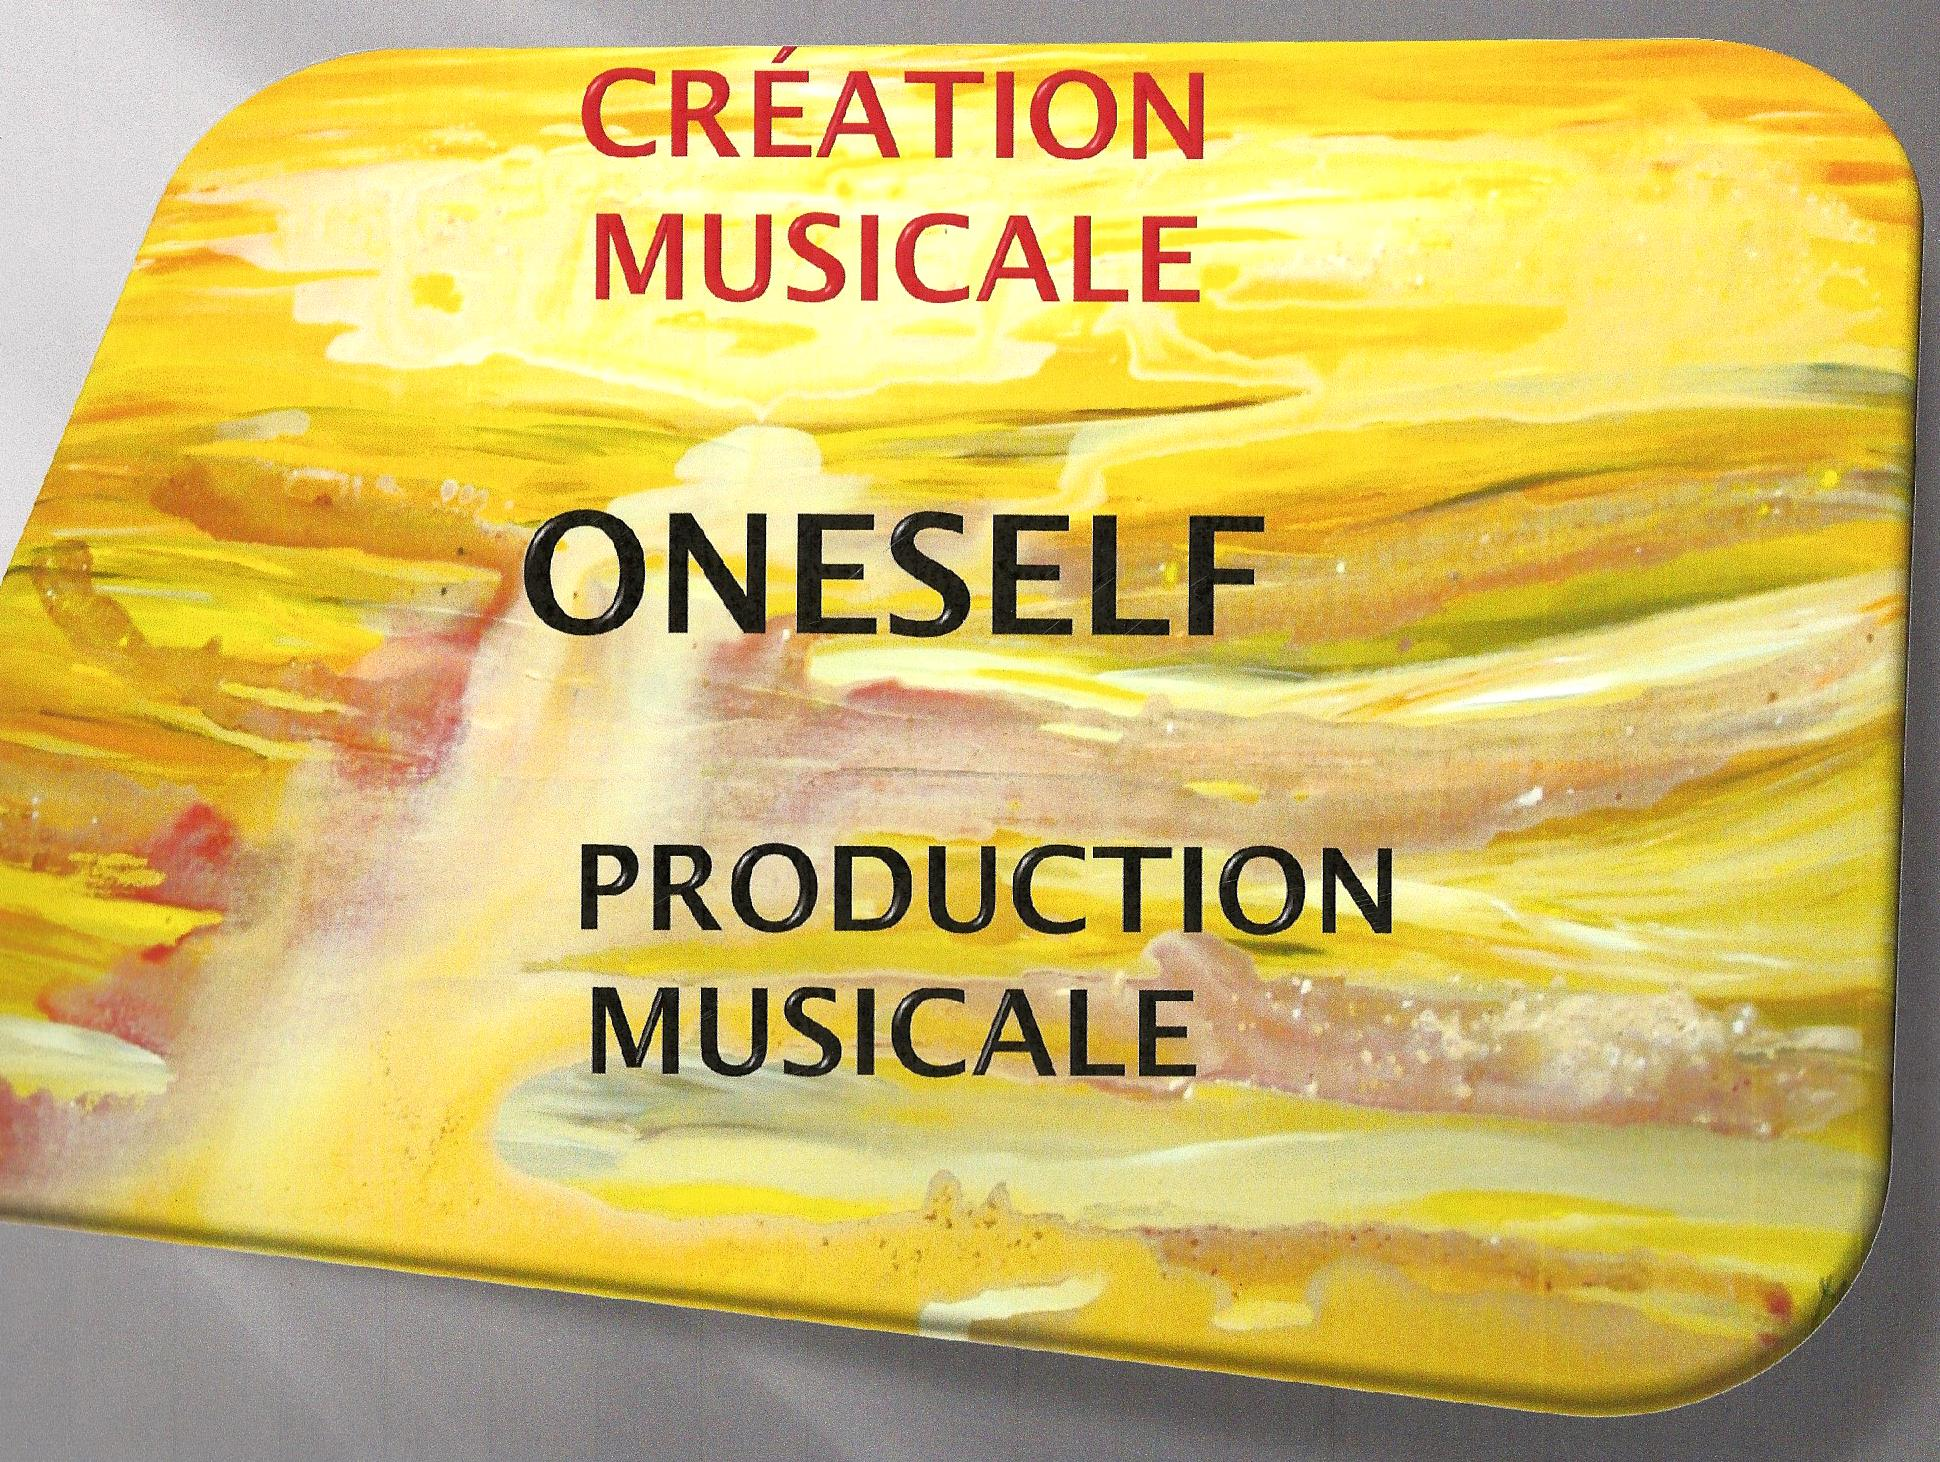 Création Musicale Oneself Production Musicale0001